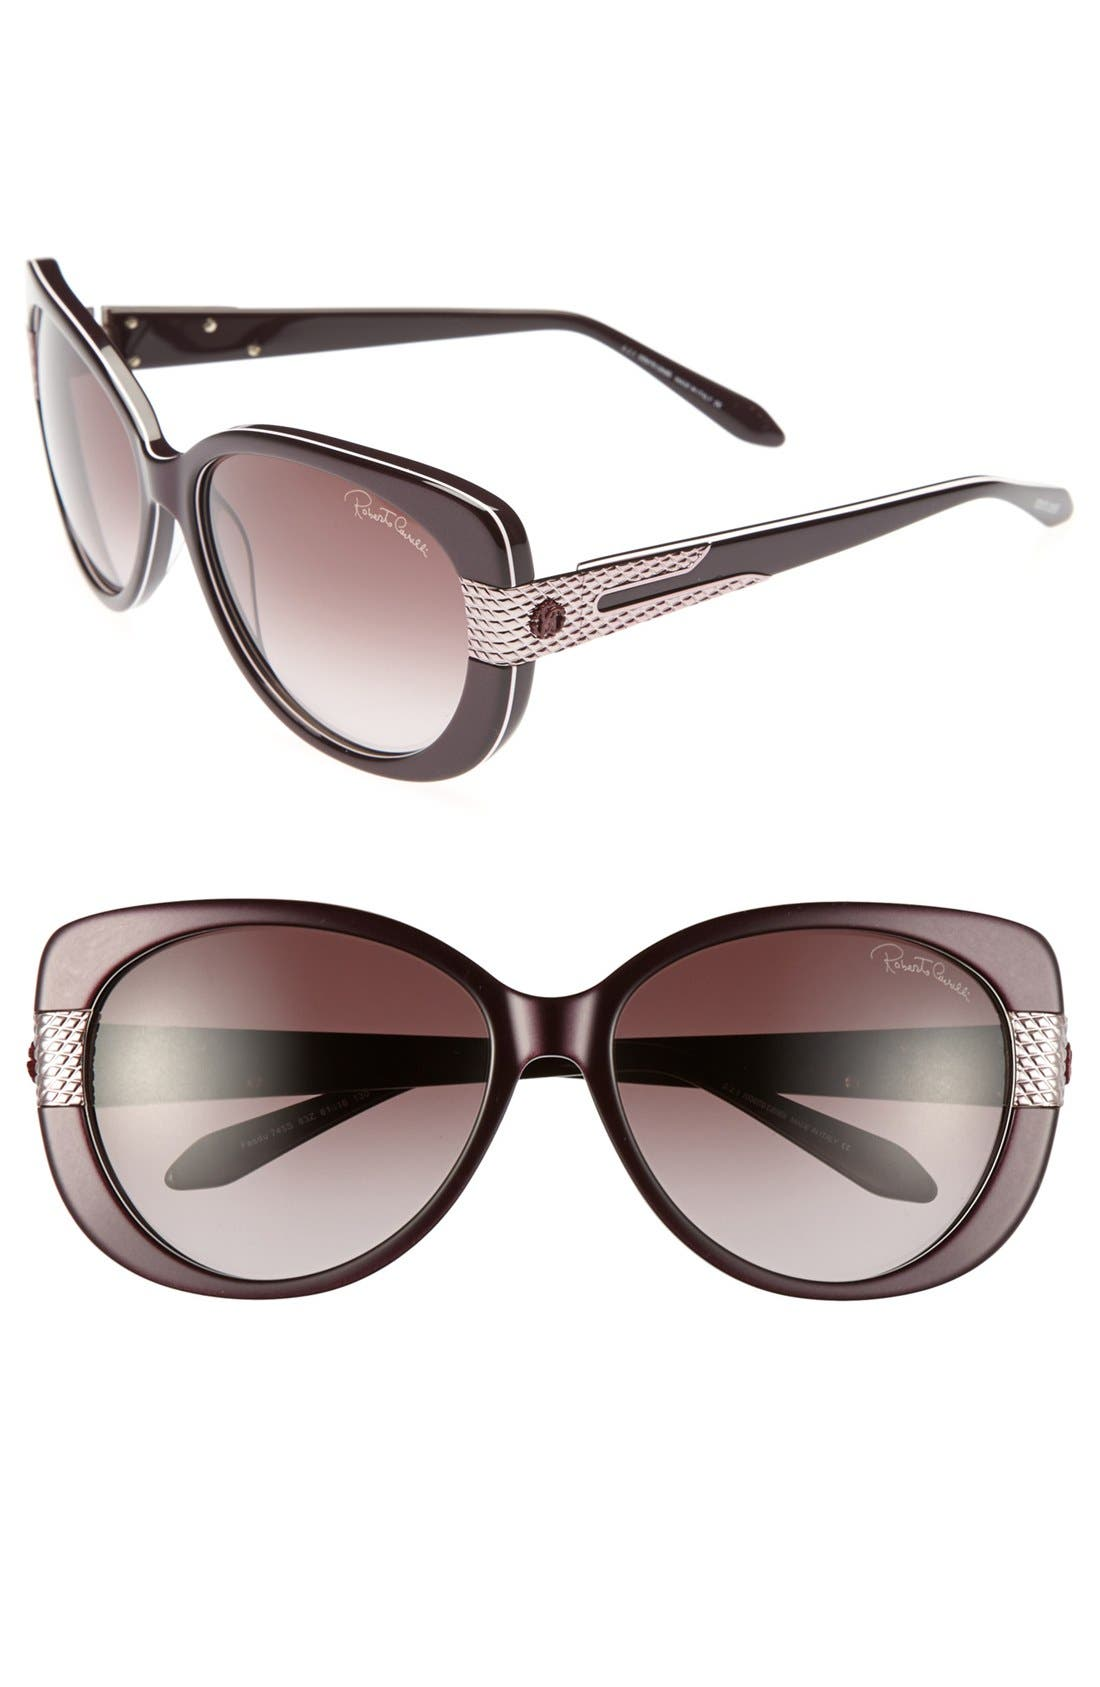 Main Image - Roberto Cavalli 'Fesdu' 61mm Sunglasses